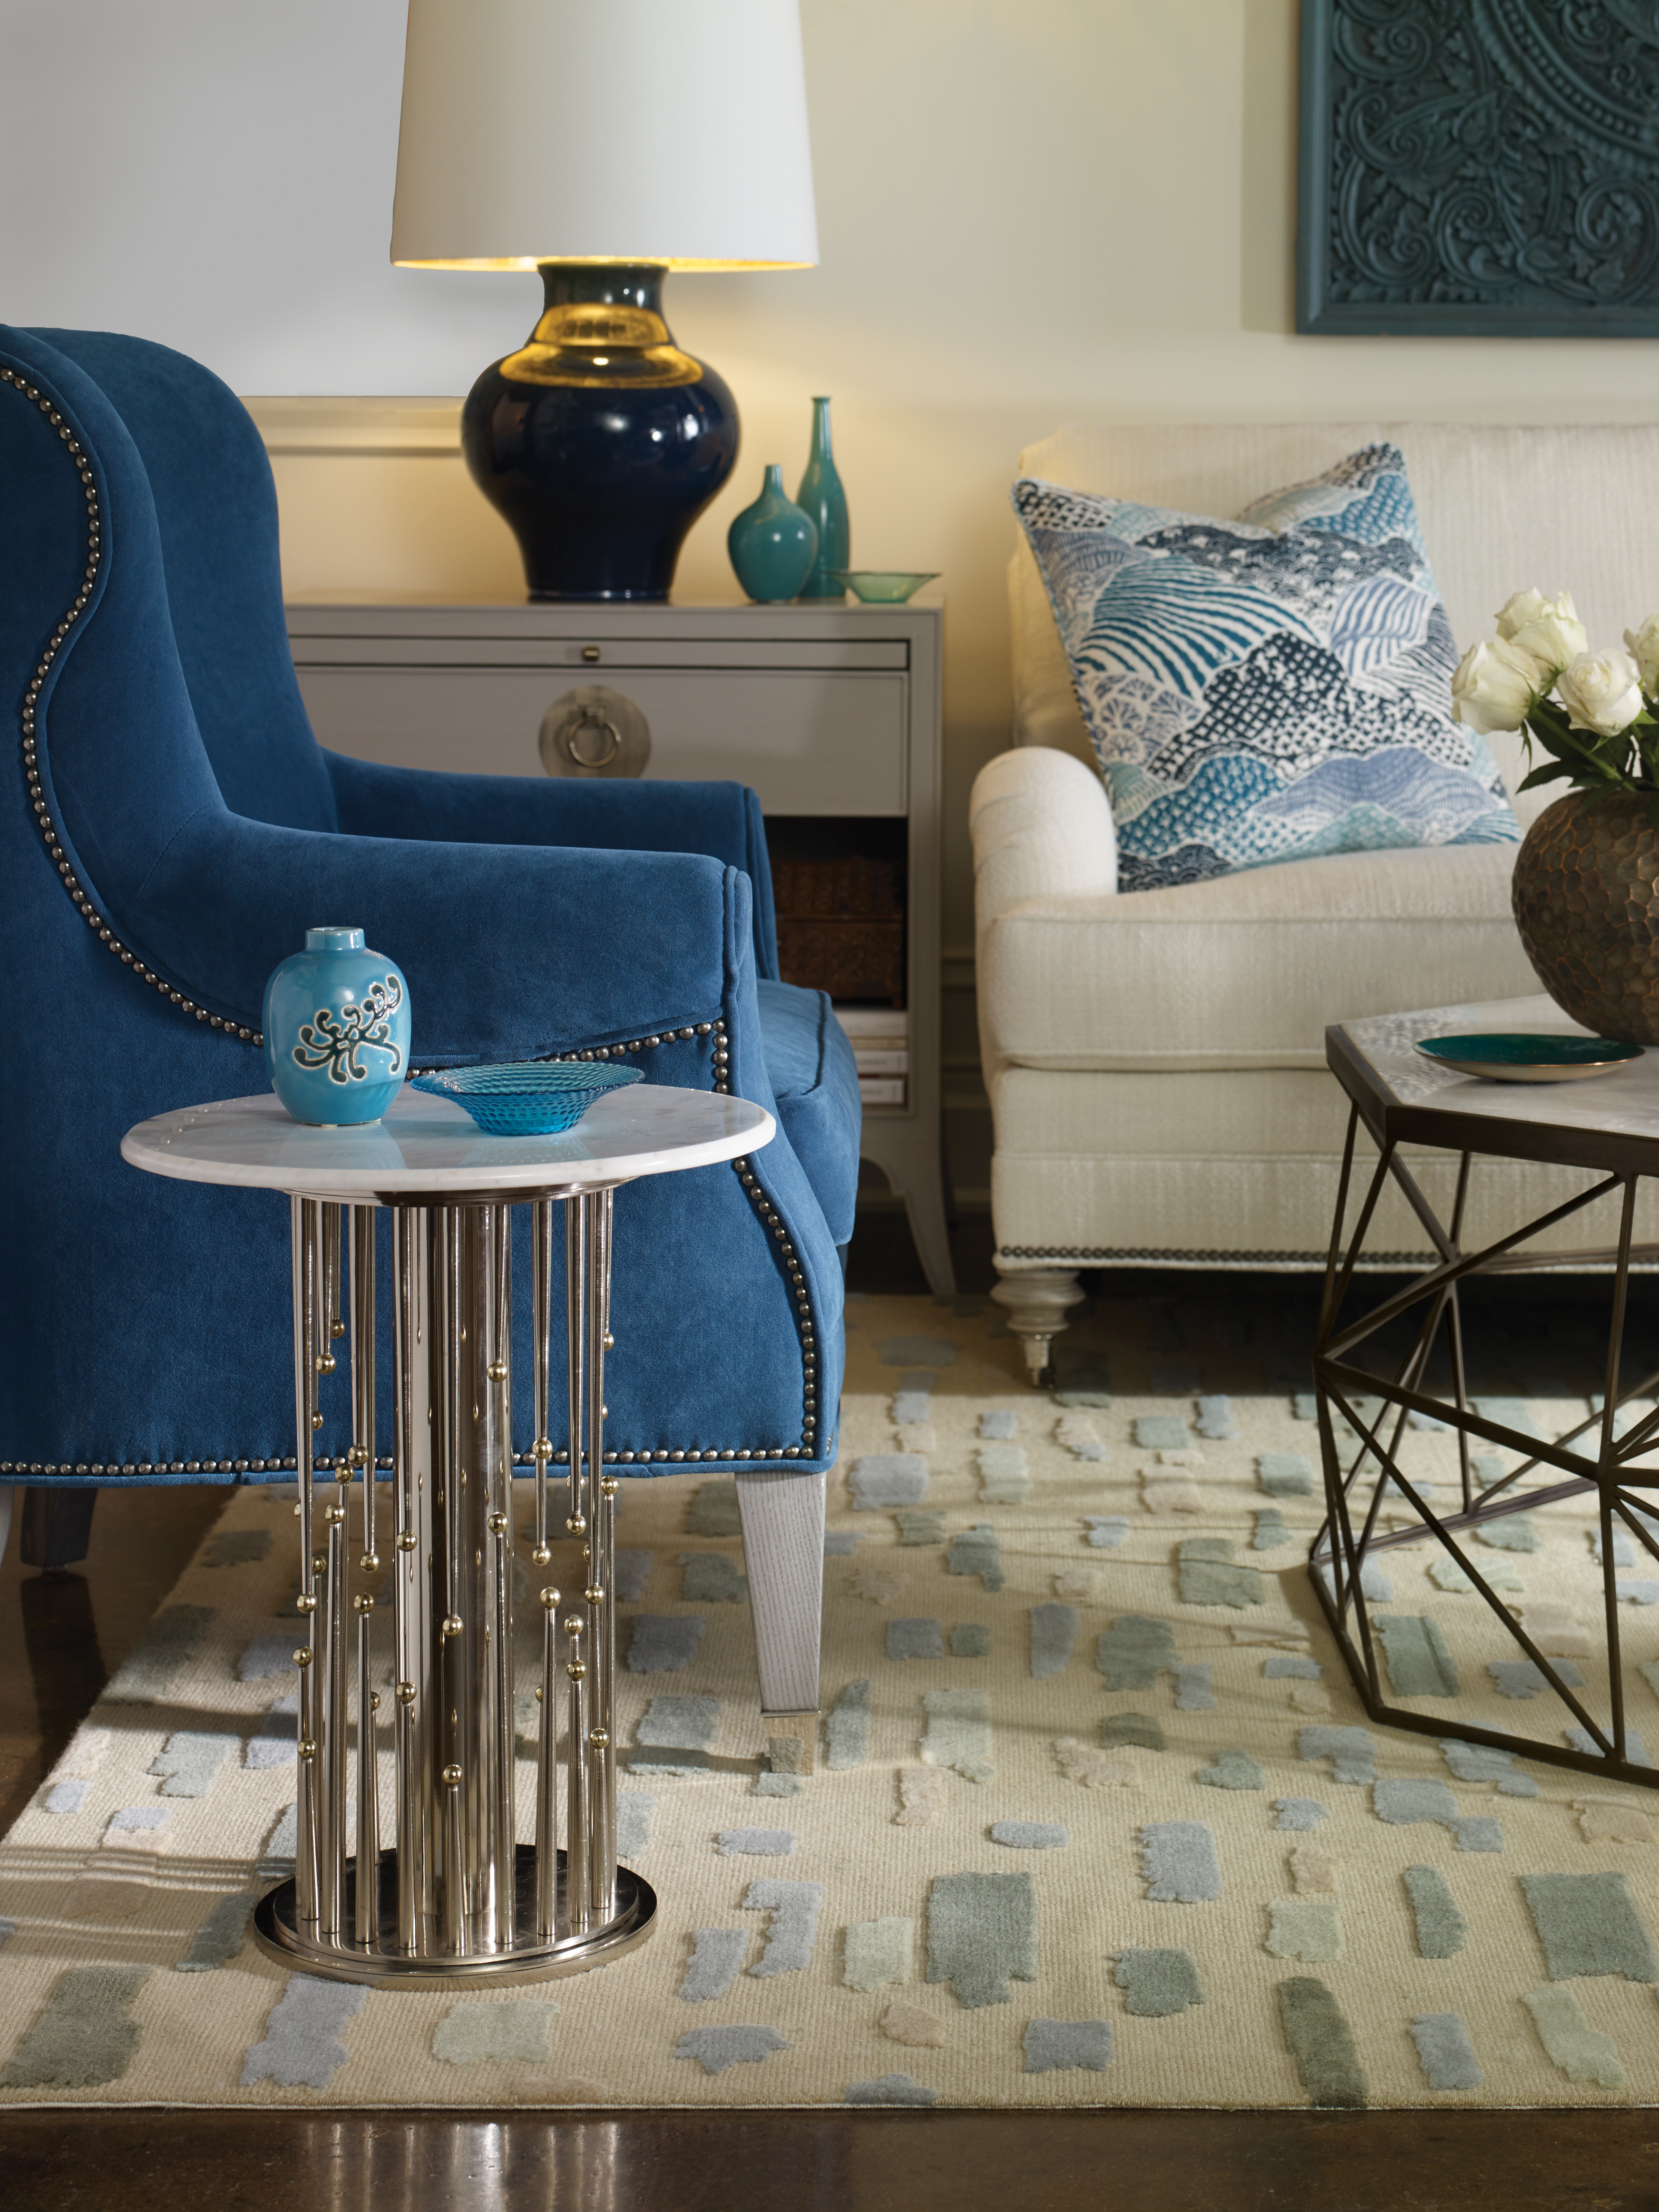 room scenes barry goralnick vanguard furniture ashx don mirrored accent table clear olivia cocktail finish warm patina brass base mosaic agaria marble top stone coloration will